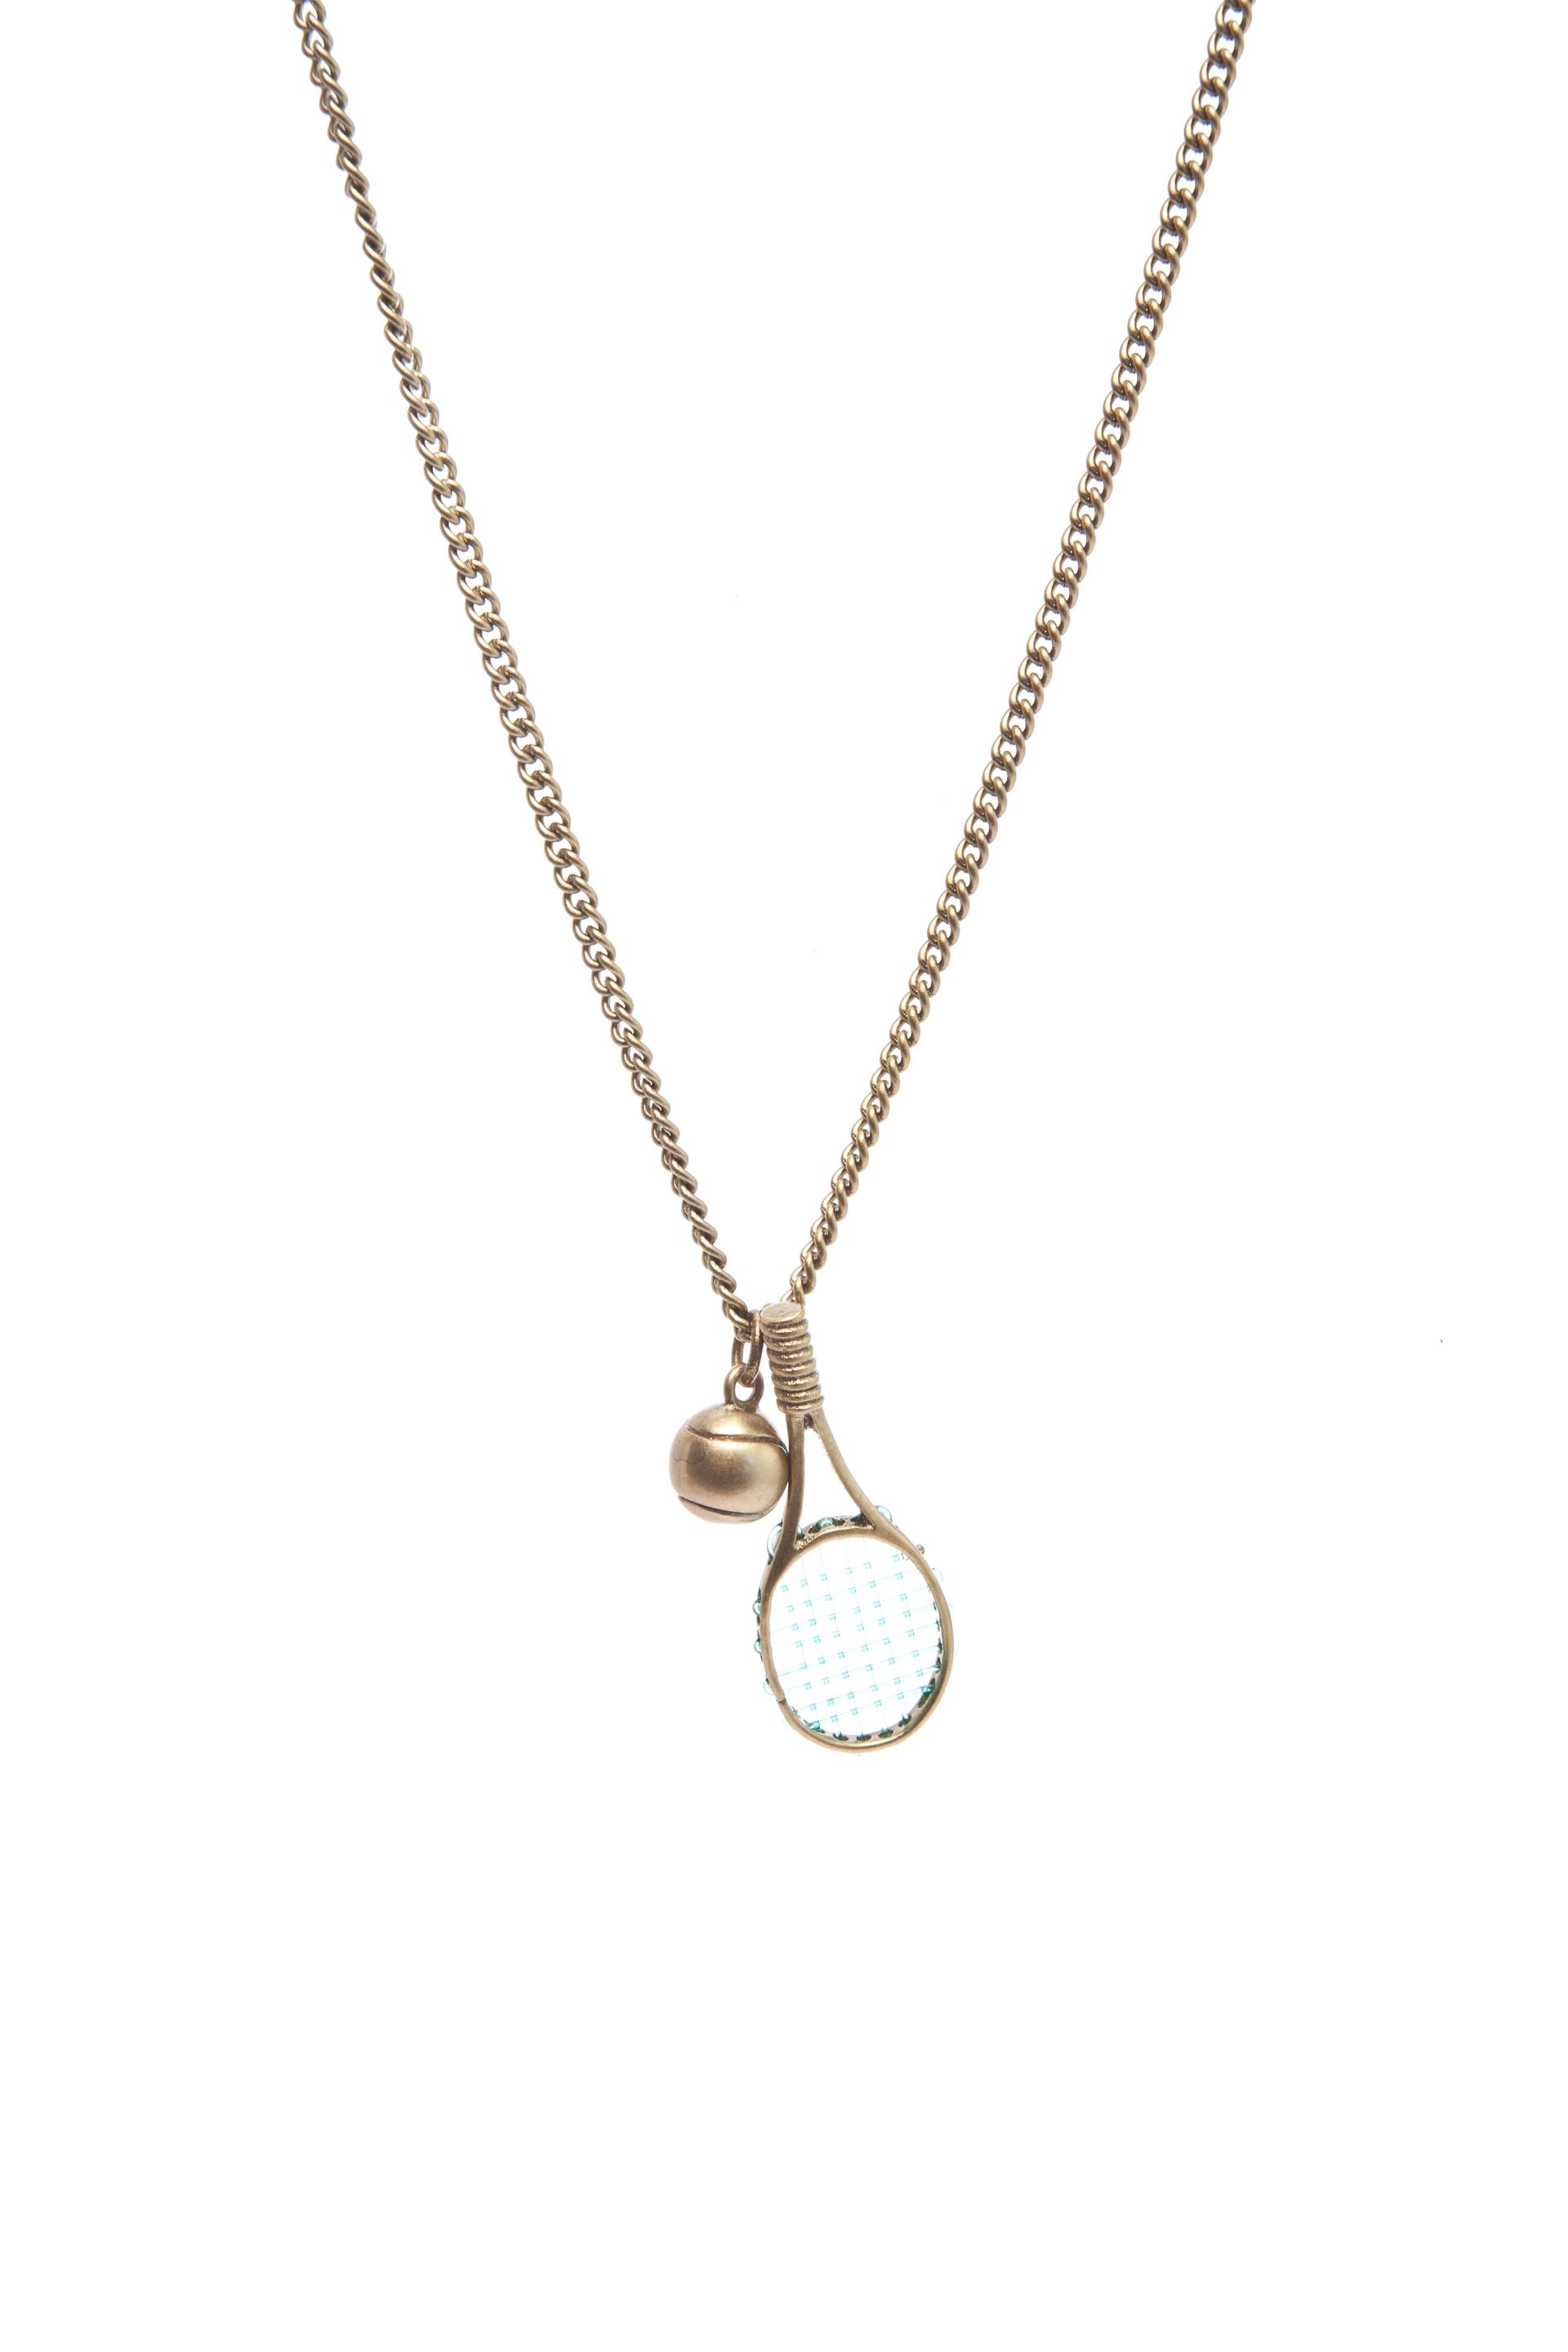 tennis necklace yellow diamond chain cut gld jewelry products shop round gold city in